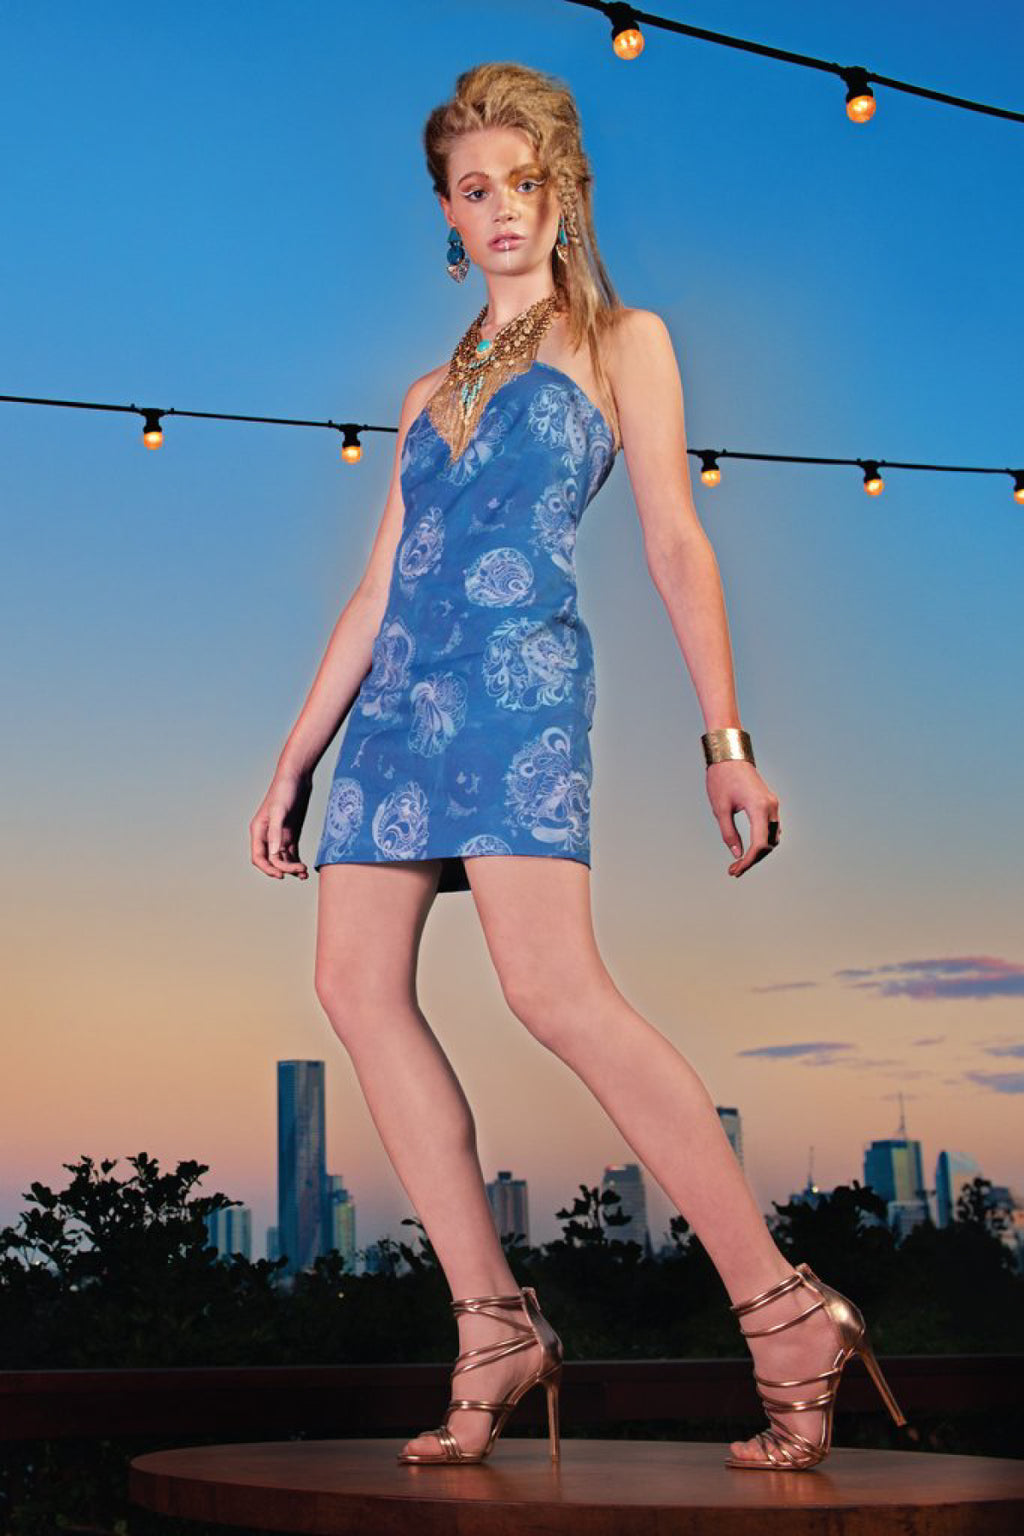 Bright Lights Custom Print Organic Cotton Mini Dress Dresses The Fashion Advocate ethical Australian fashion designer boutique Melbourne sustainable clothes